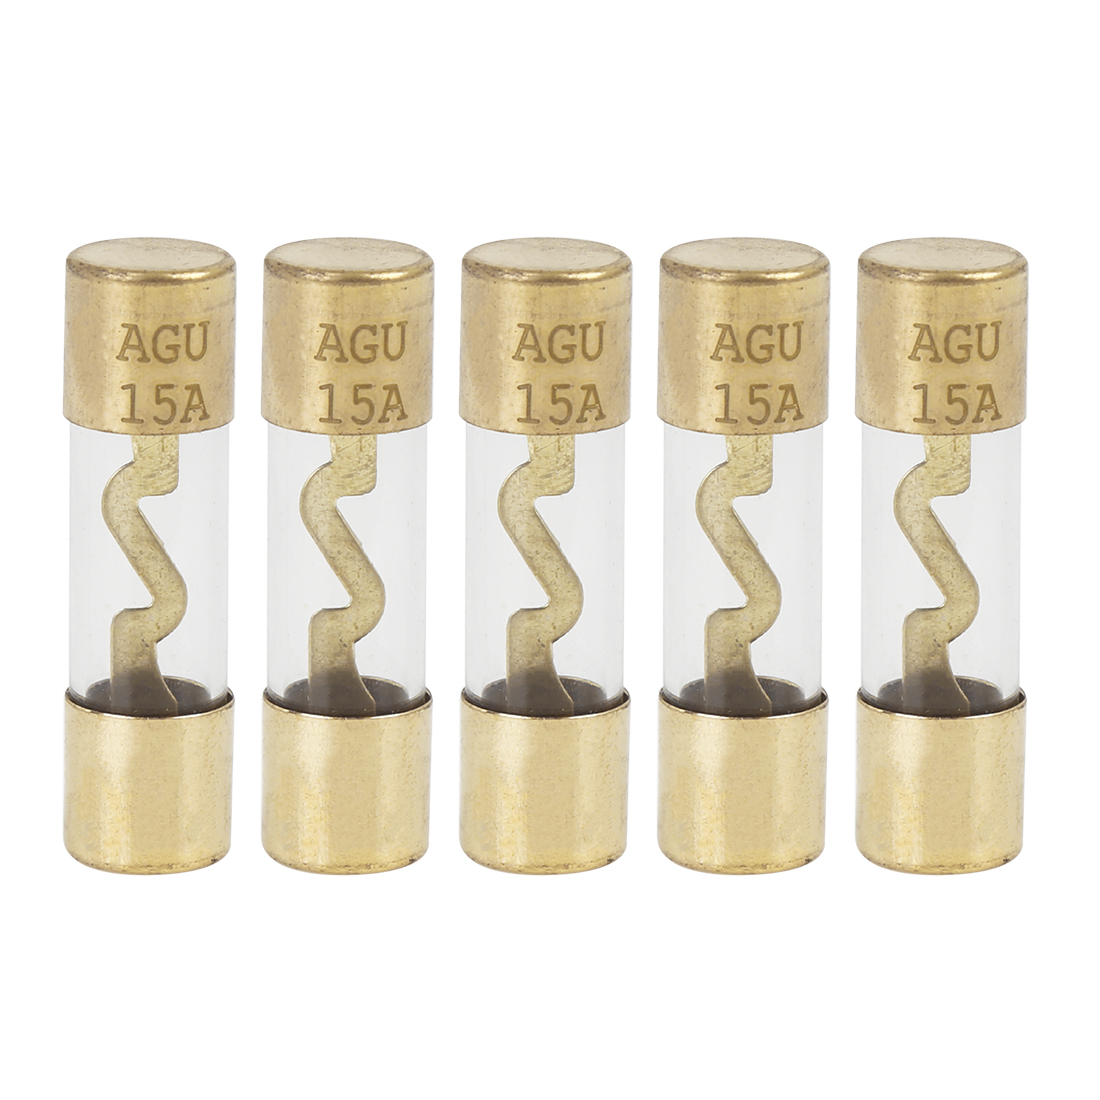 5pcs 15 Amp AGU Fuse Gold Tone Plated for Car Audio Video Stereo